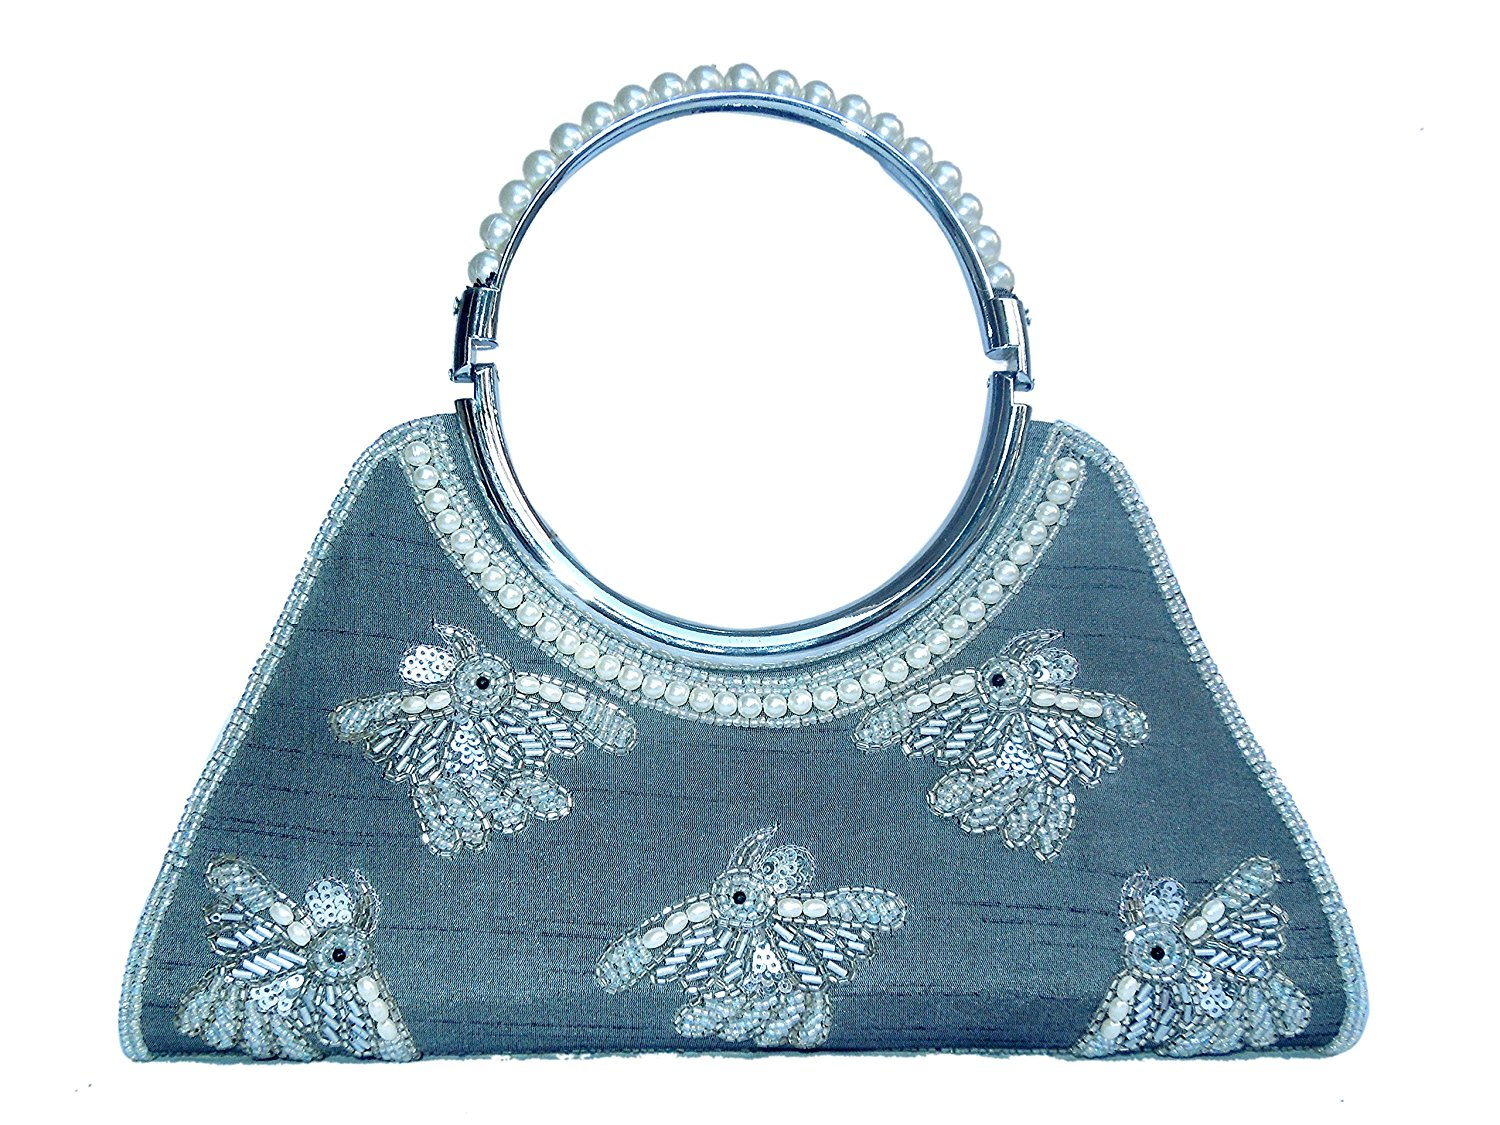 6df655ad8b2 Get Quotations · Spice Art Silver Zardozi Embroidered Silk Clutch for Ladies  with Handle